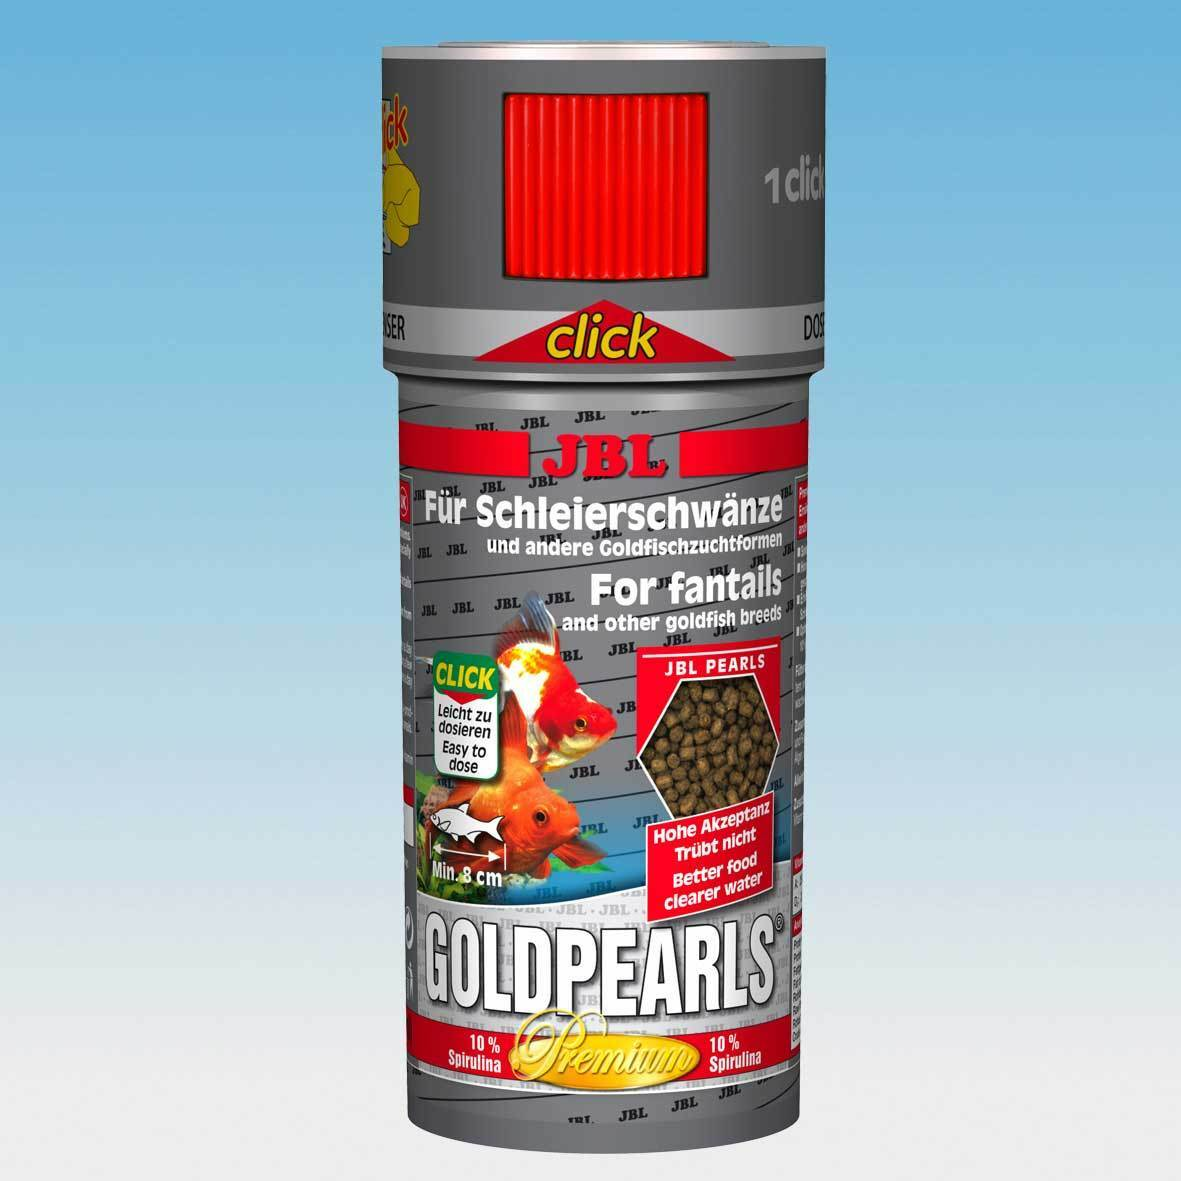 Jbl goldpearls clic 250ml poisson rouge nourriture for Nourriture poisson rouge composition